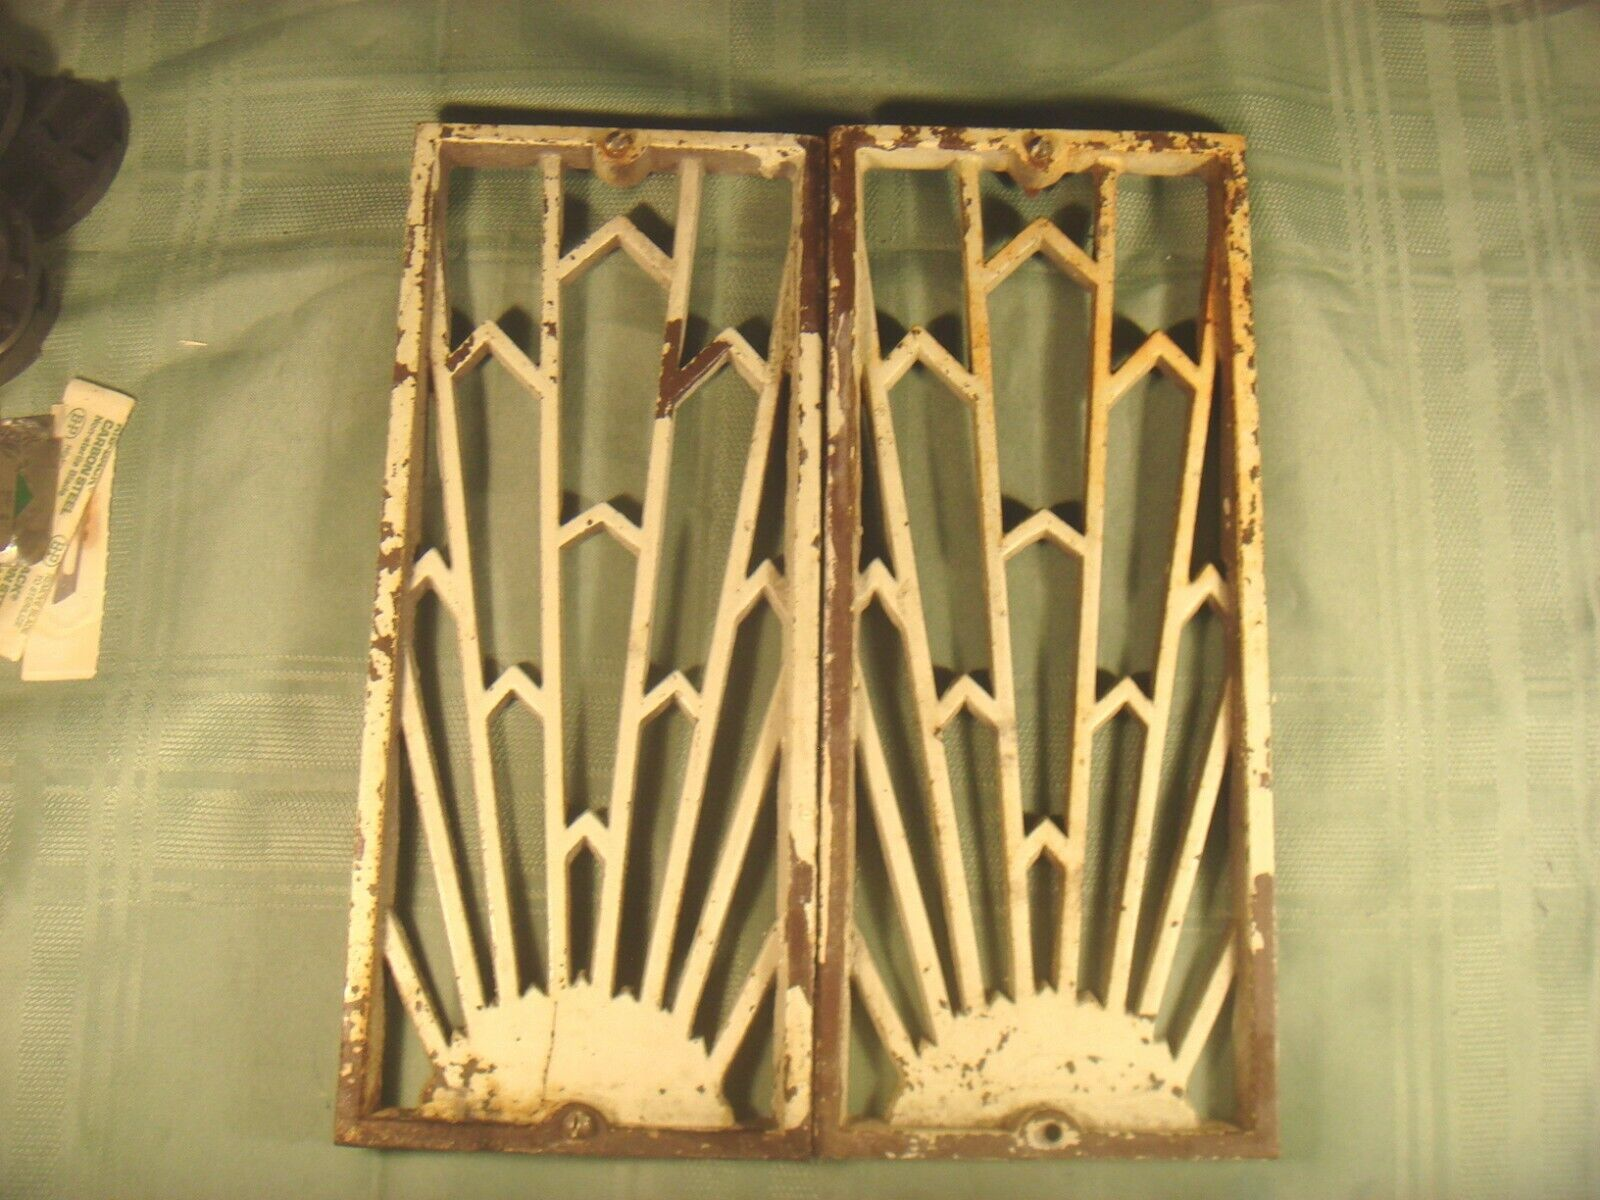 2 VINTAGE CASTIRON CATHEDRAL-STYLE HEATER VENTS/GRATES, ARCHITECTURAL SALVAGE - $29.99